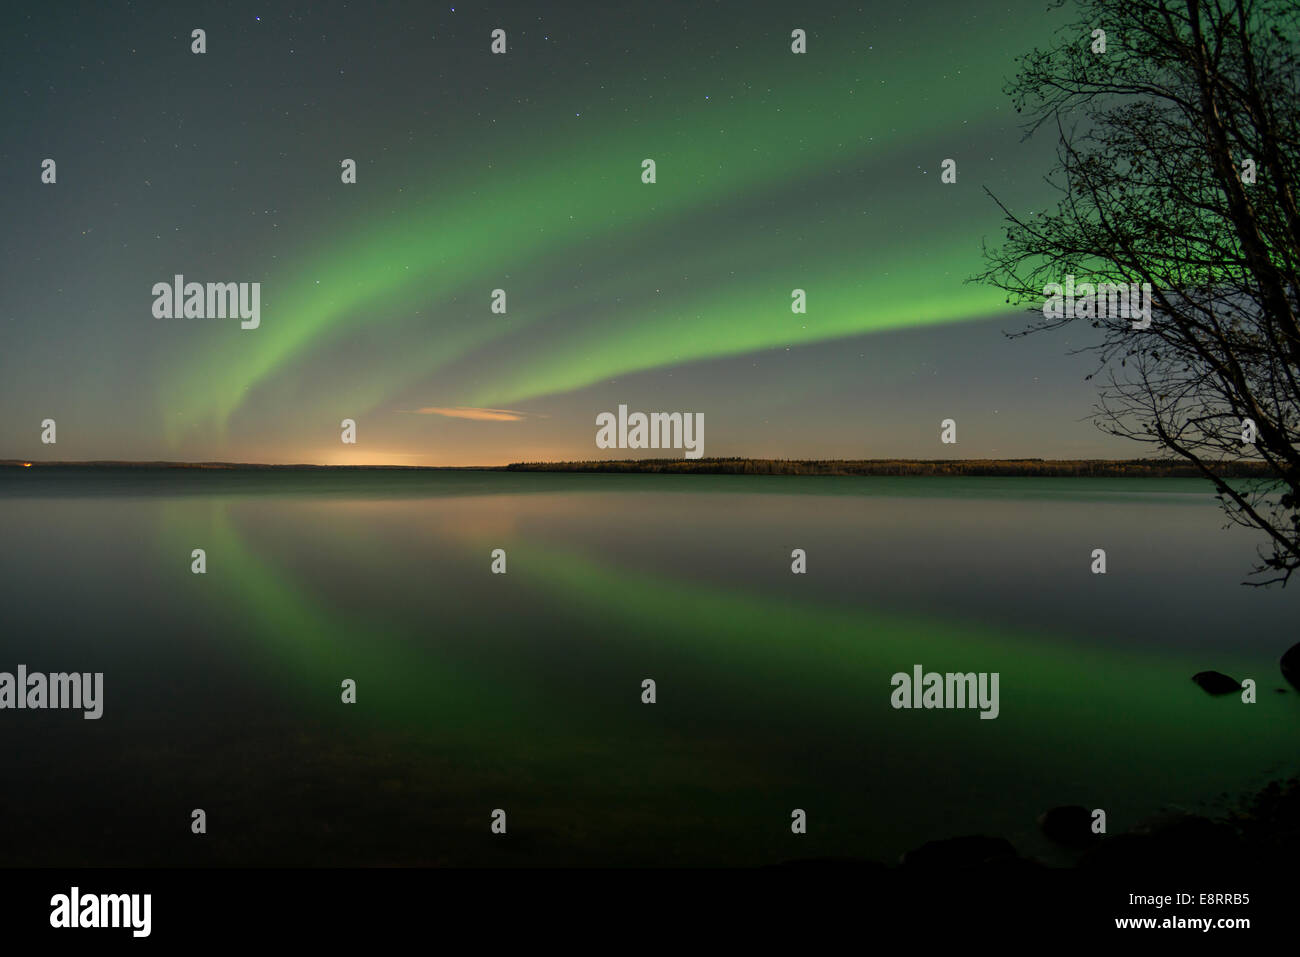 Norther lights with a reflection in the water with a silhouette of a tree. - Stock Image